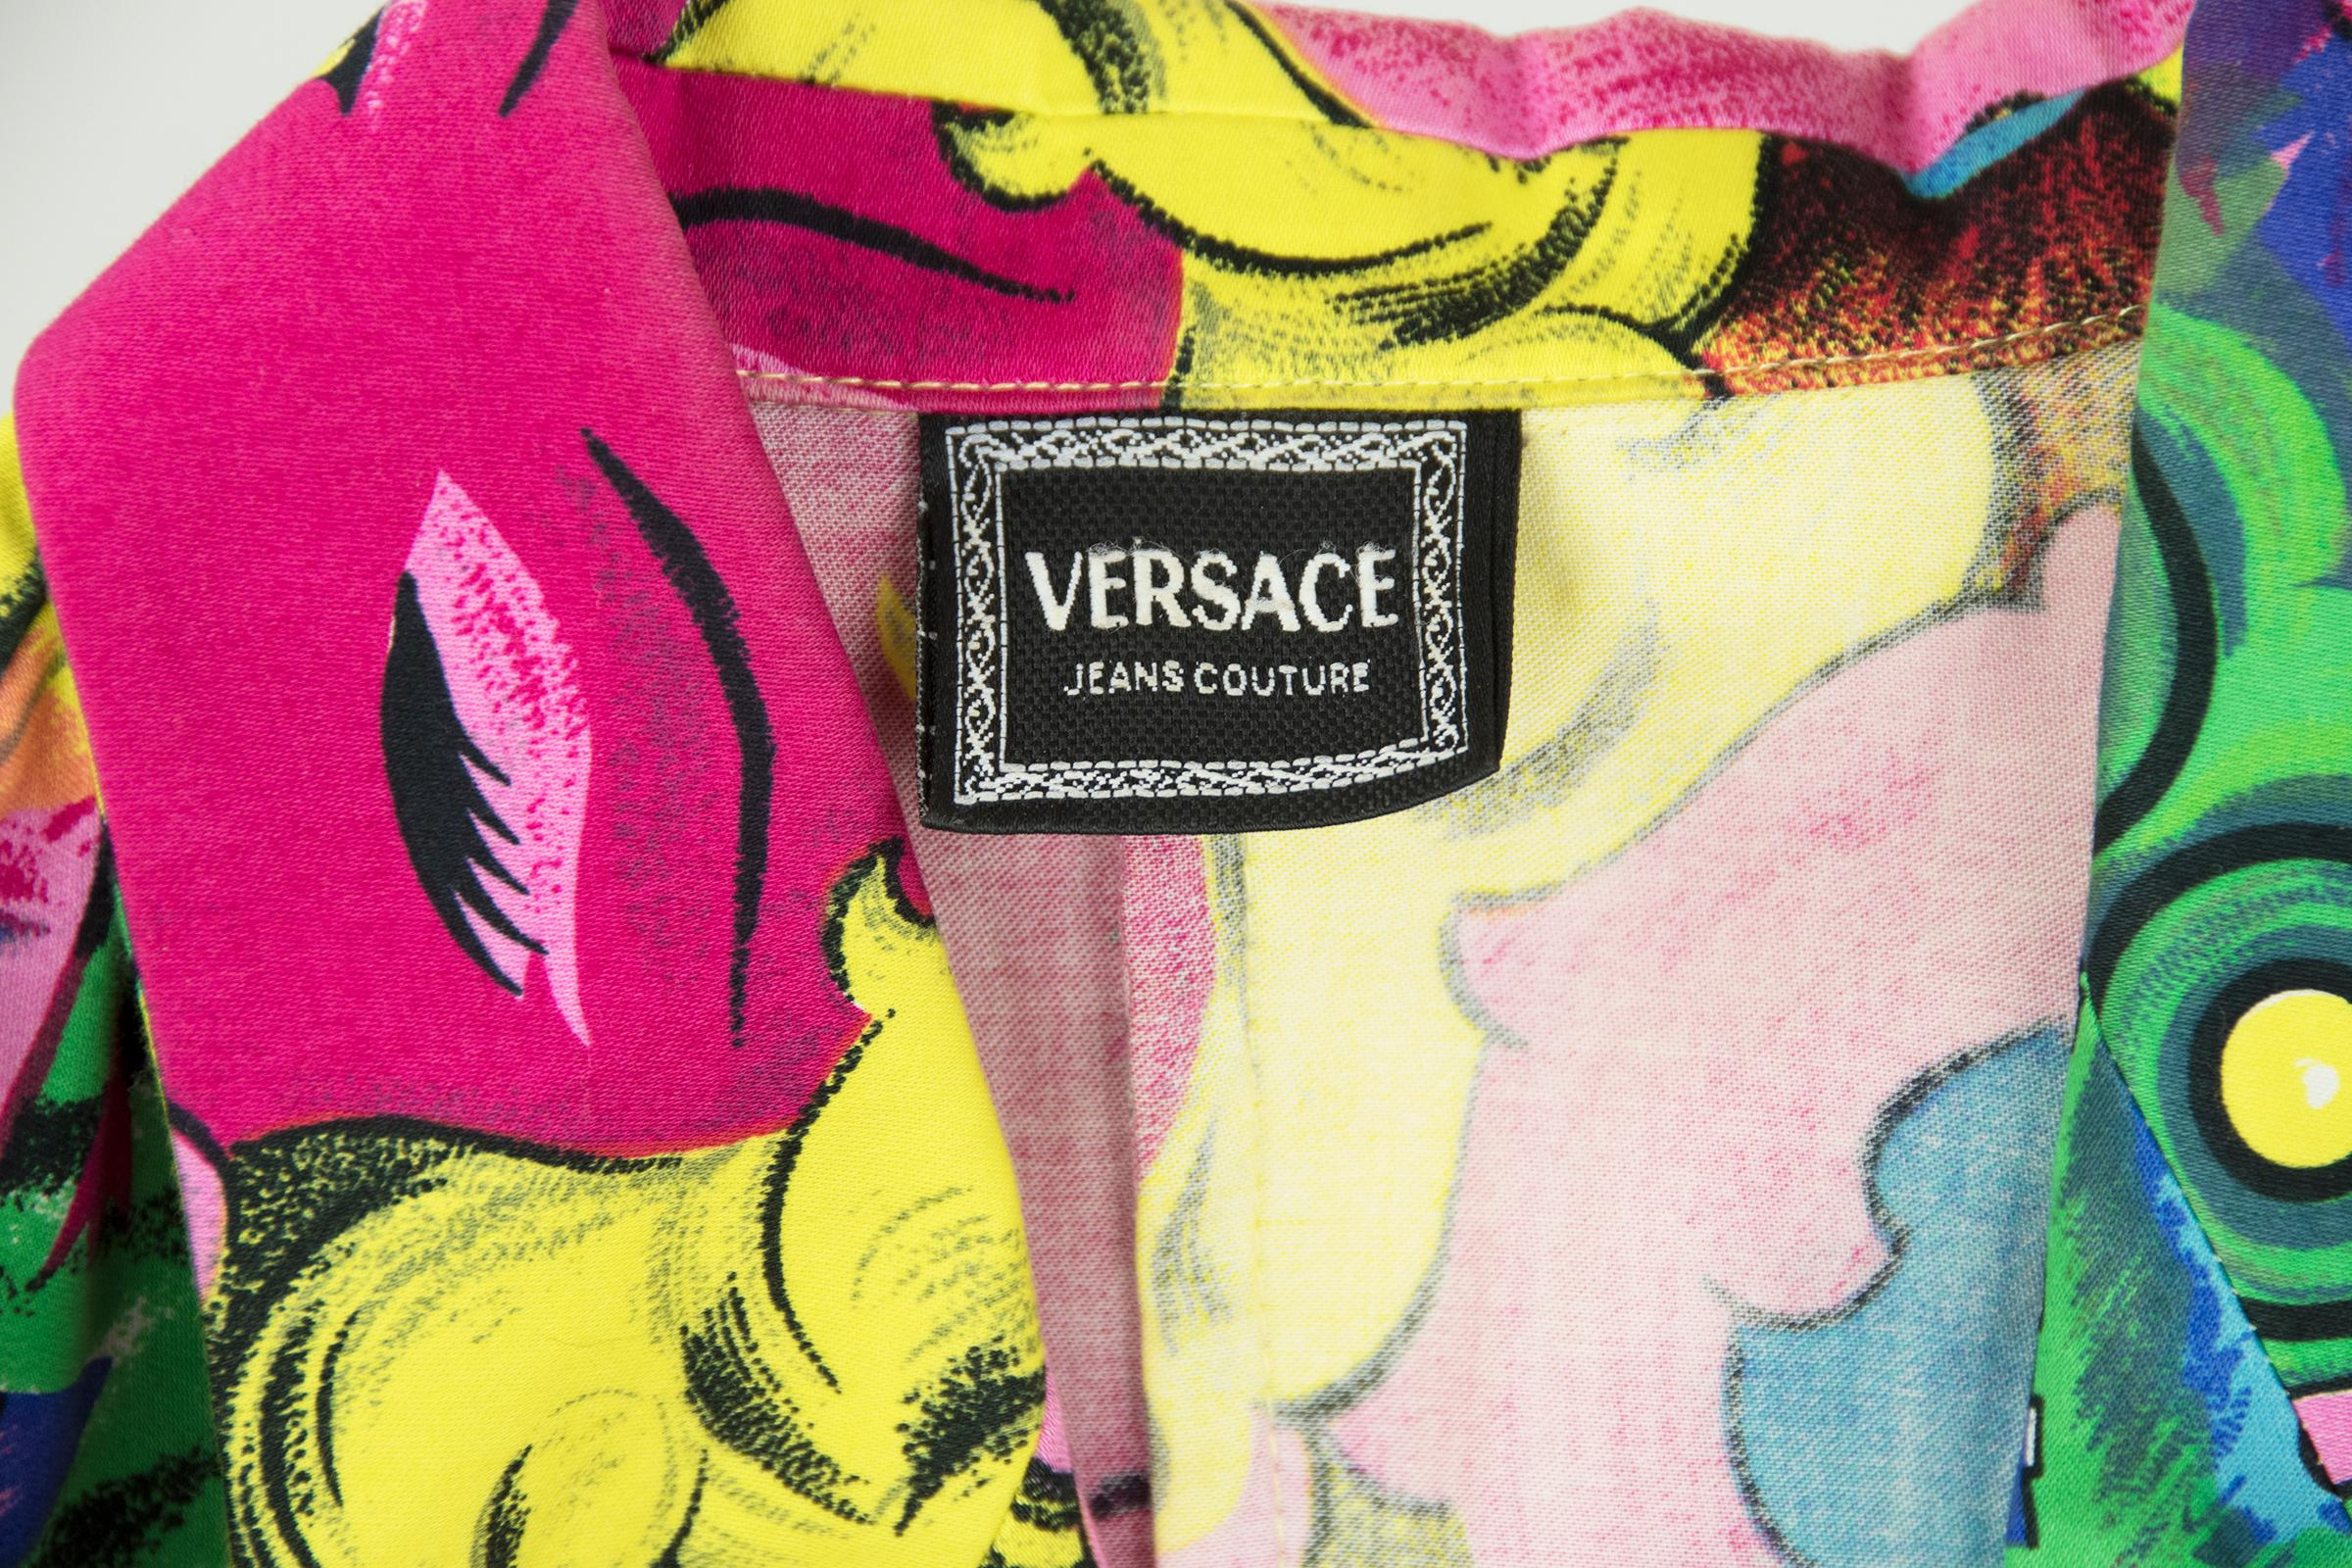 Versace Vintage Betty Boop and Marilyn Monroe Two Piece Suit For ...